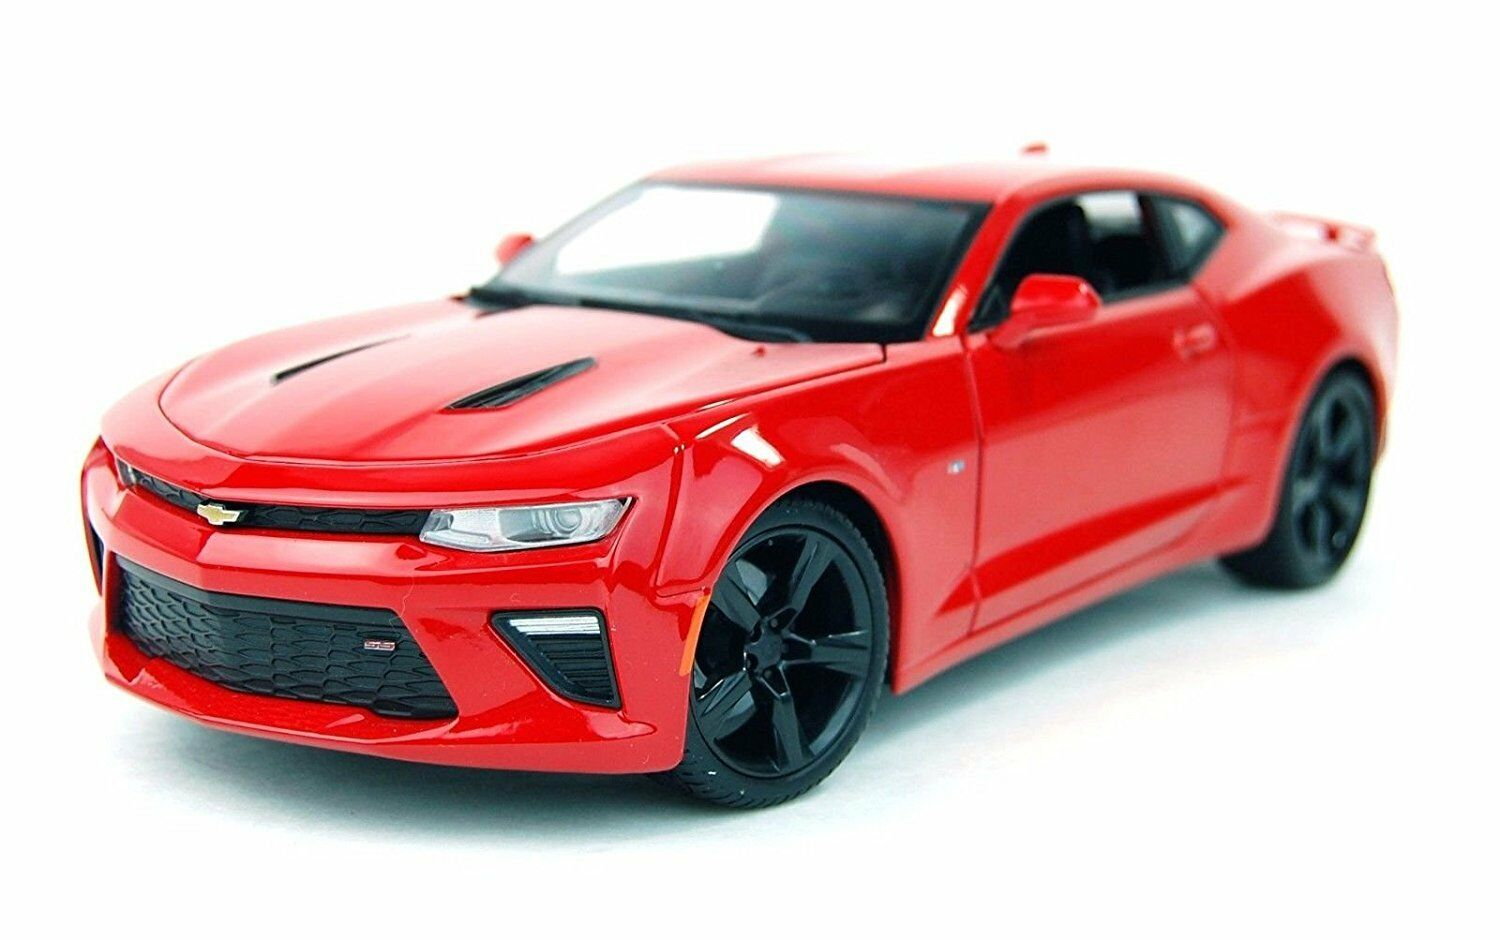 Maisto 1 18 2016 Chevrolet Camaro SS Diecast Model Sports Racing Car Vehicle rosso